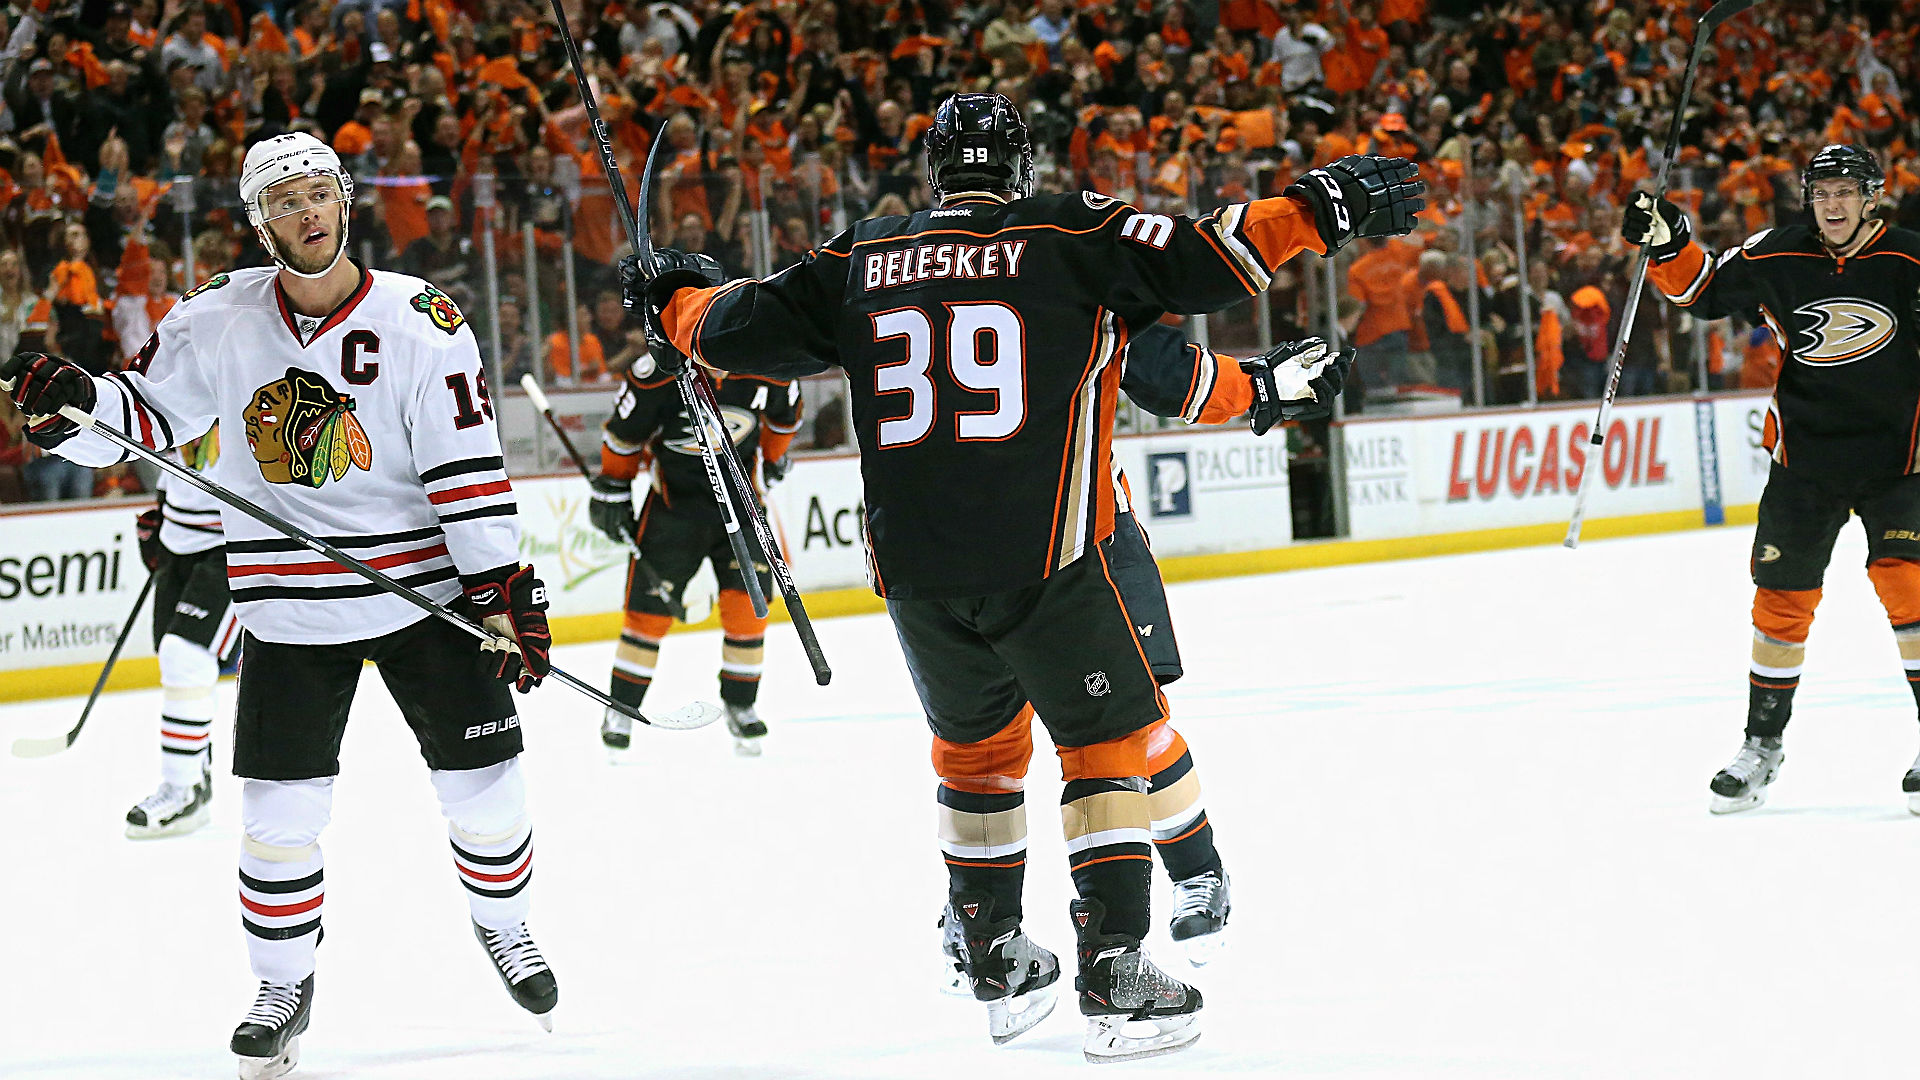 Blackhawks vs. Ducks Game 2 — Chicago needs stars to awaken